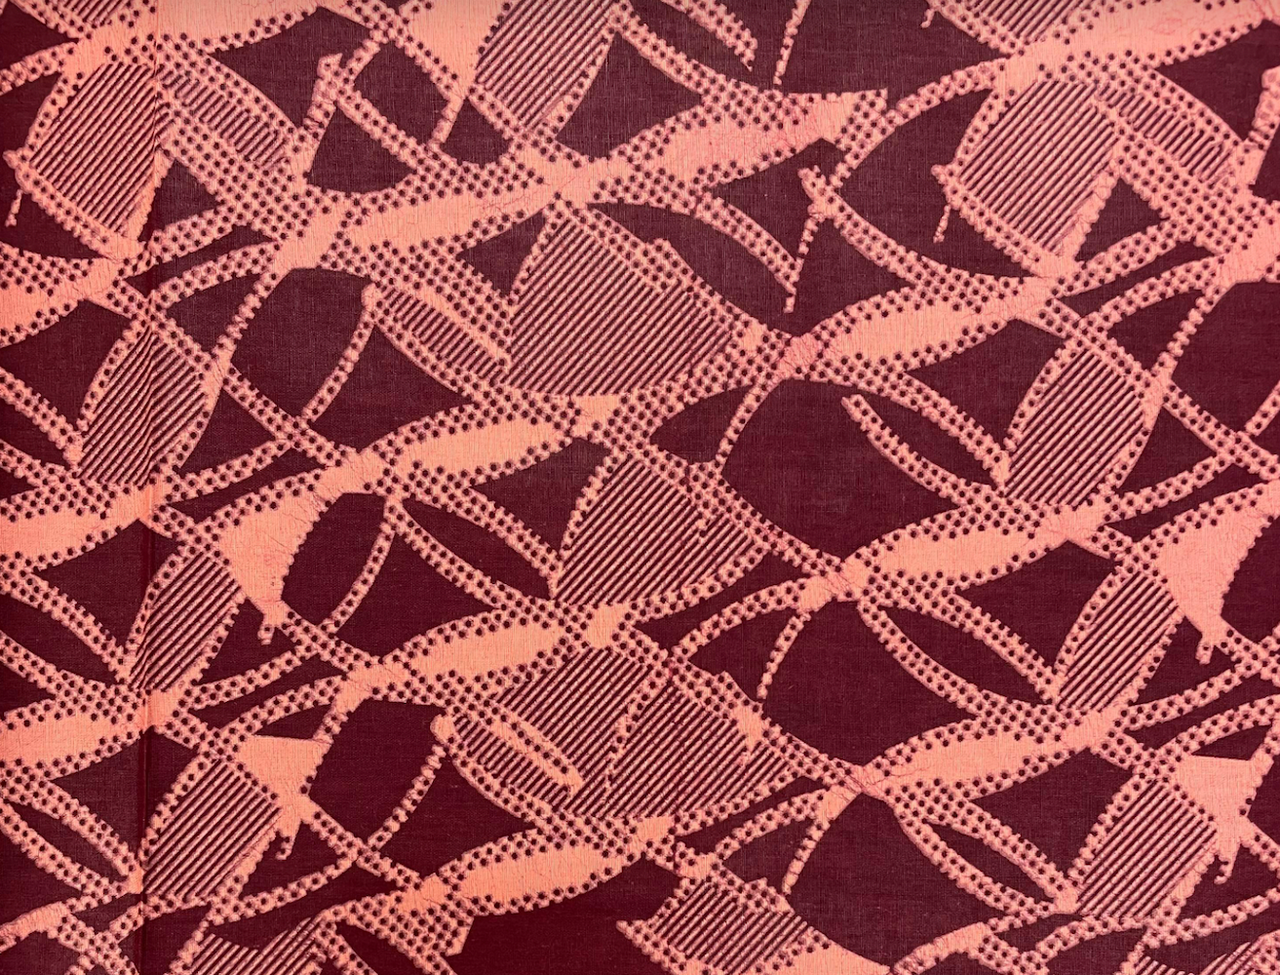 African Traditional Wax Print 27055 Wine Cotton Fabric By The Yard